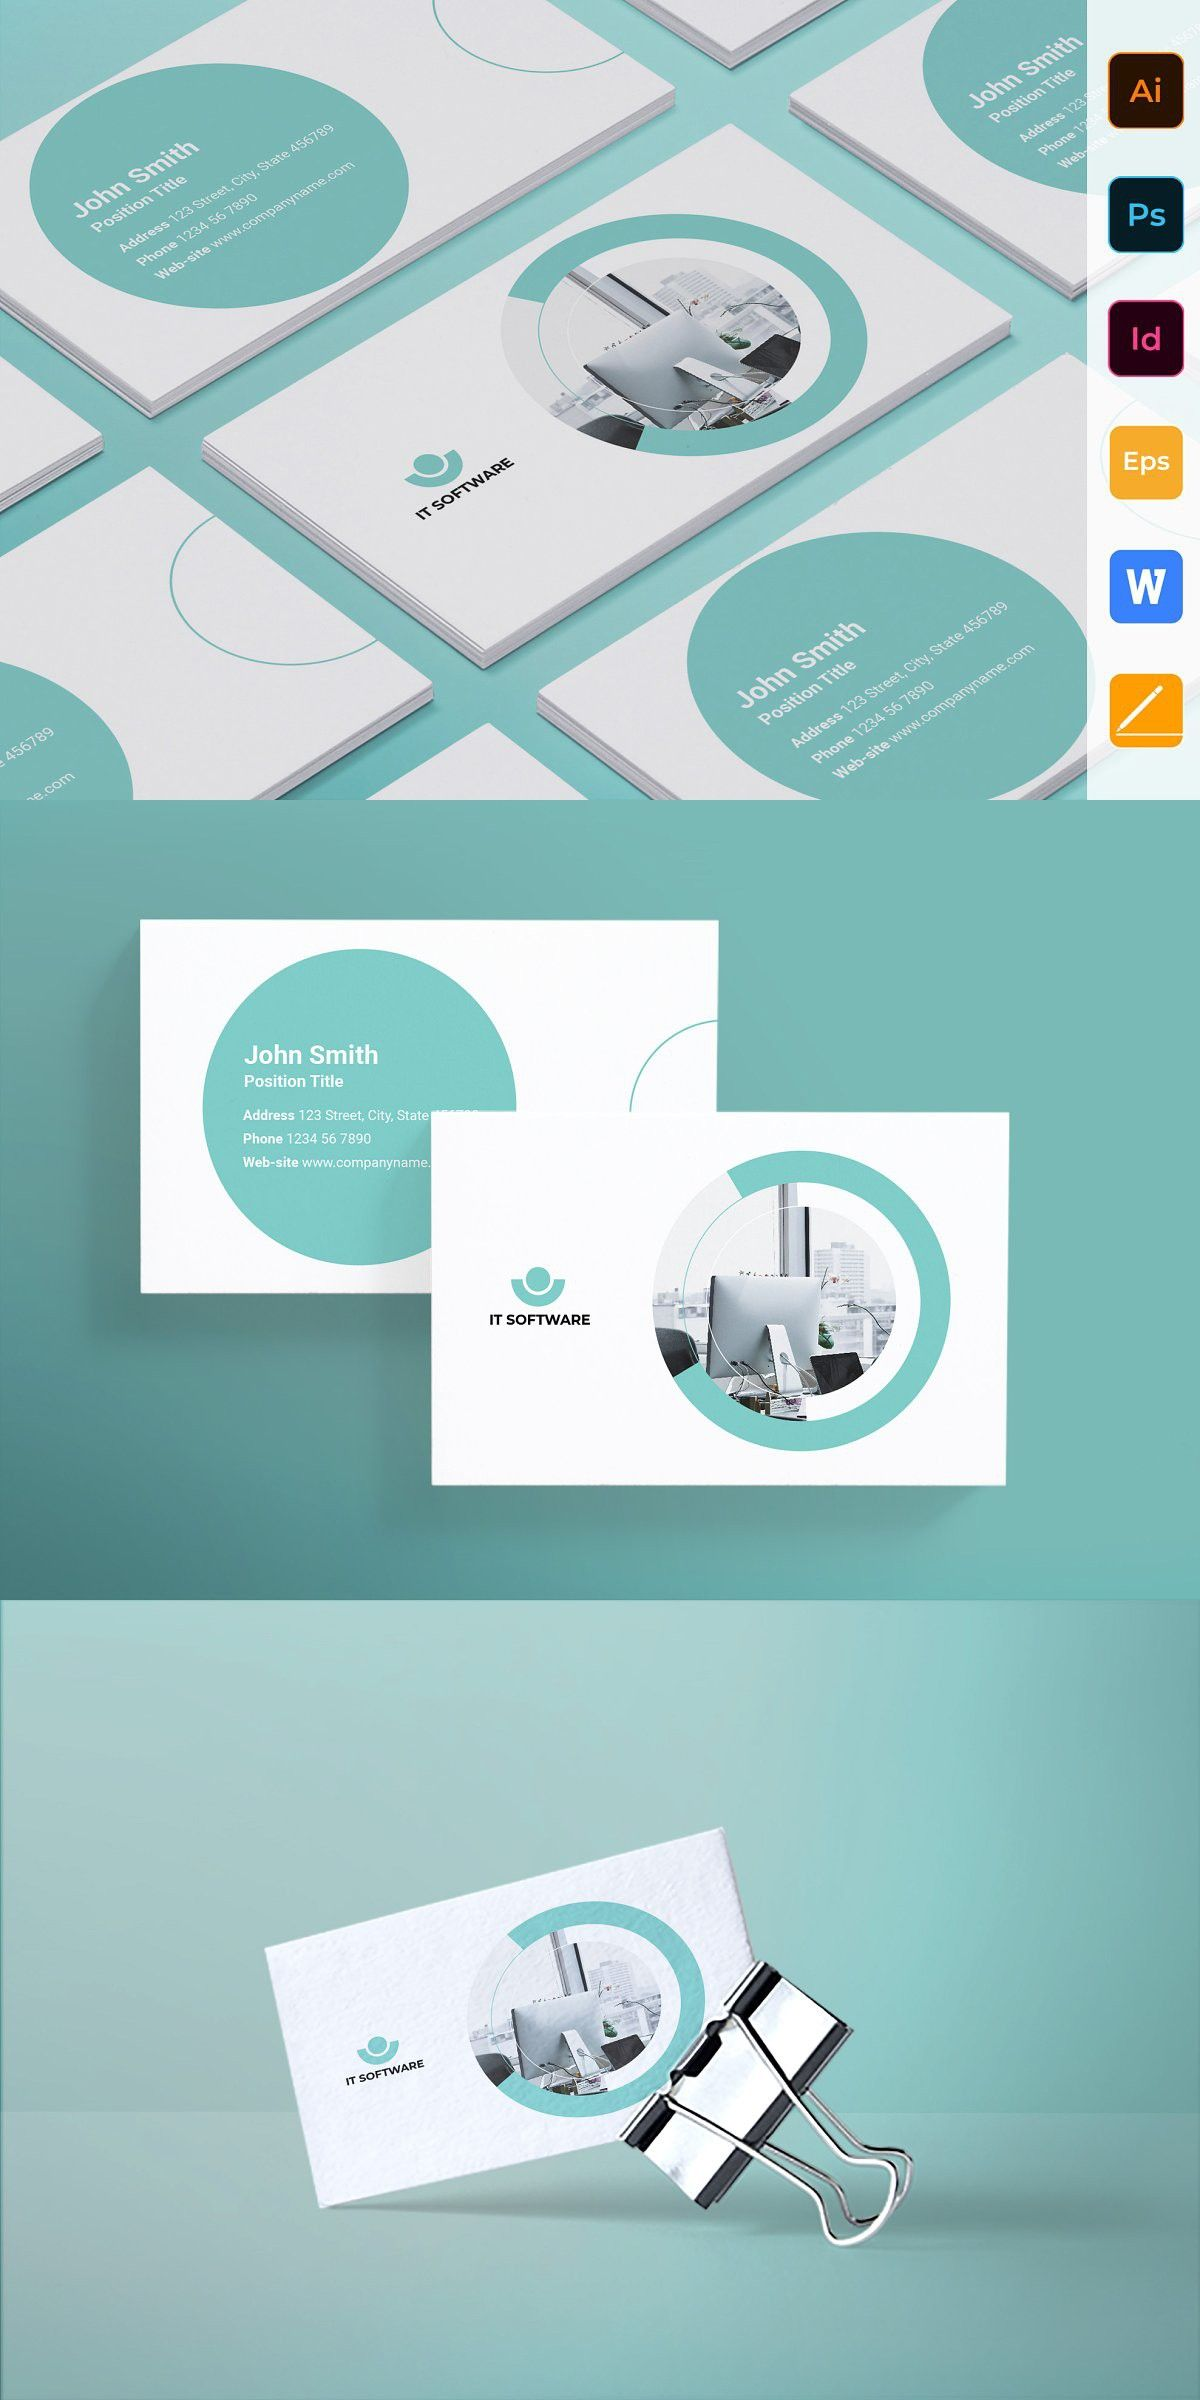 It Software Business Card High Quality Business Cards Unique Business Cards Indesign Templates